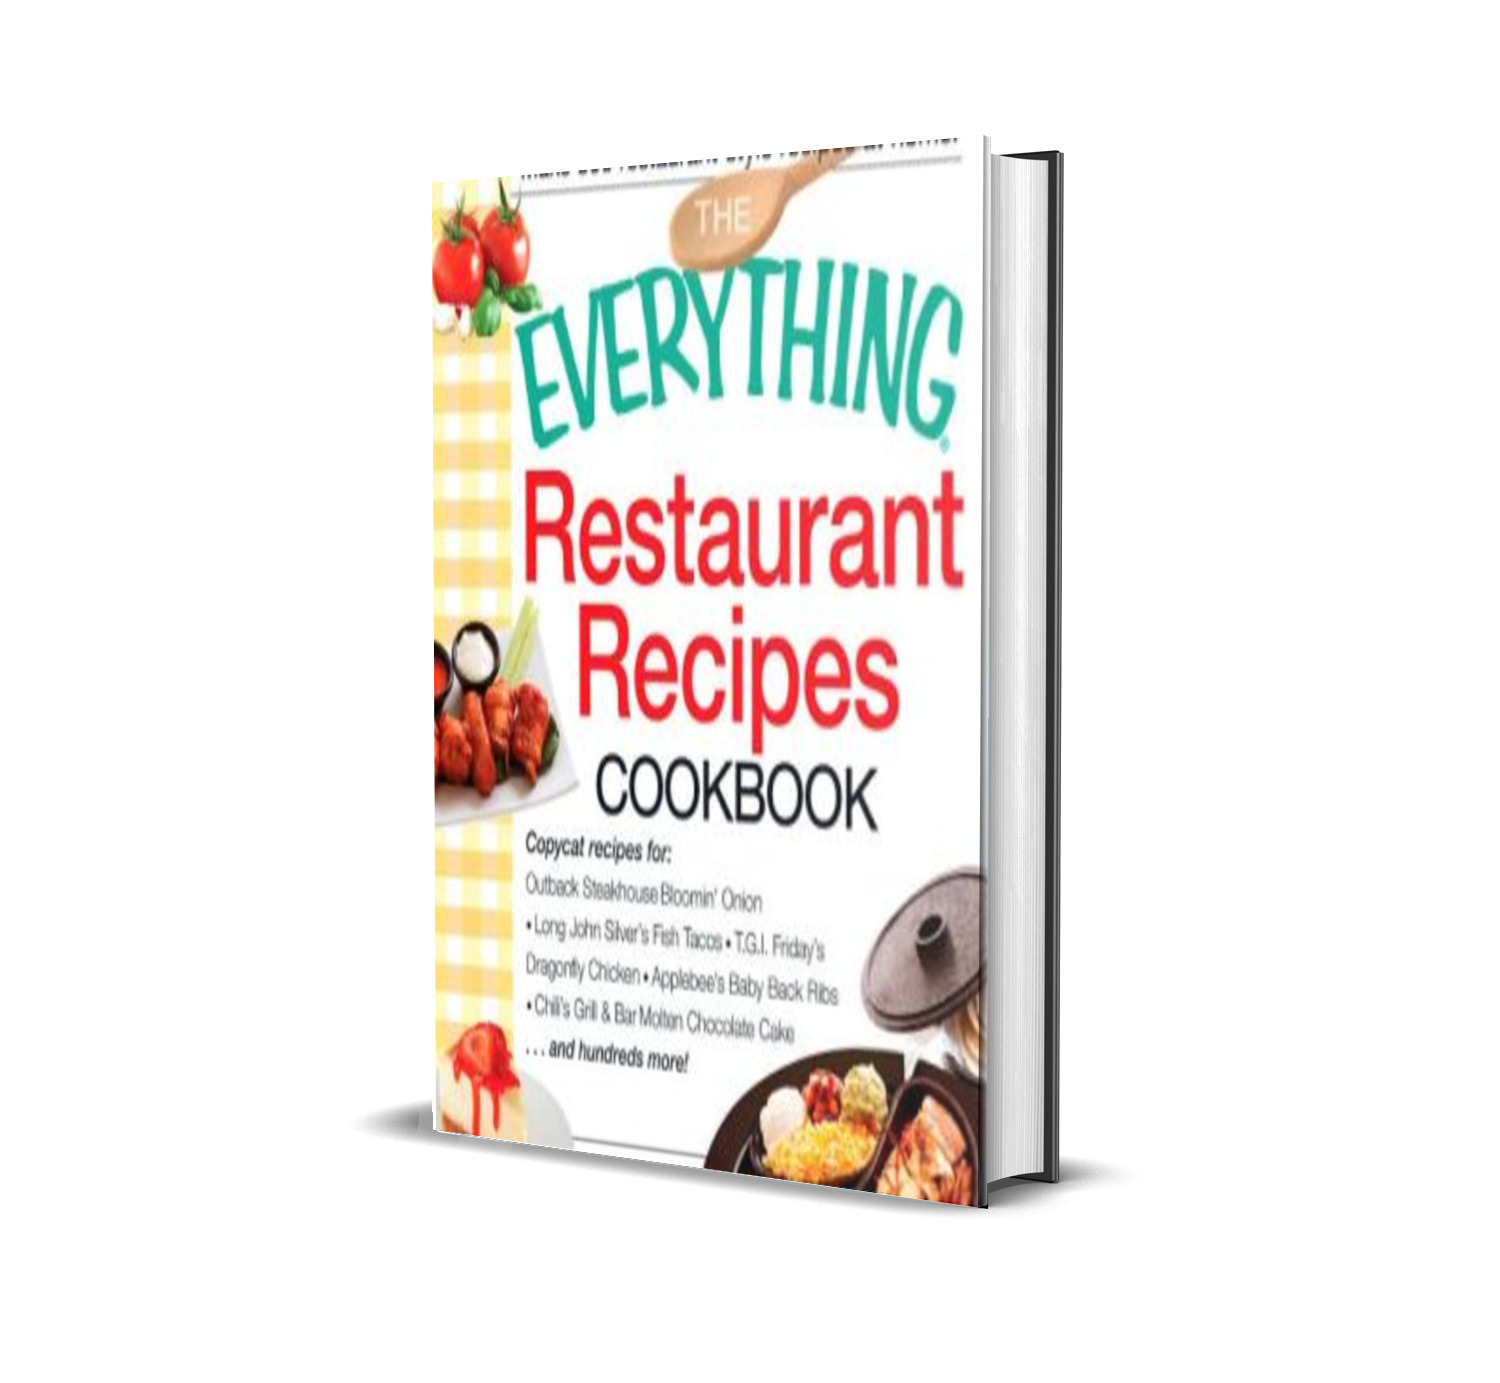 THE EVERYTHING RESTAURANT RECIPES